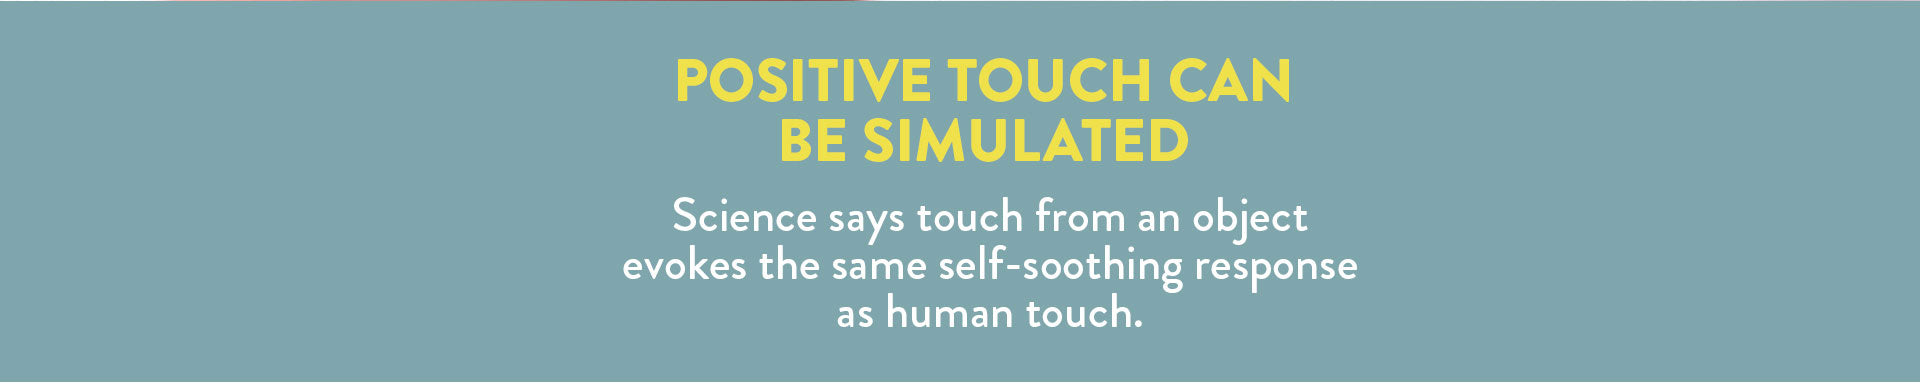 babies - positive touch can be stimulating